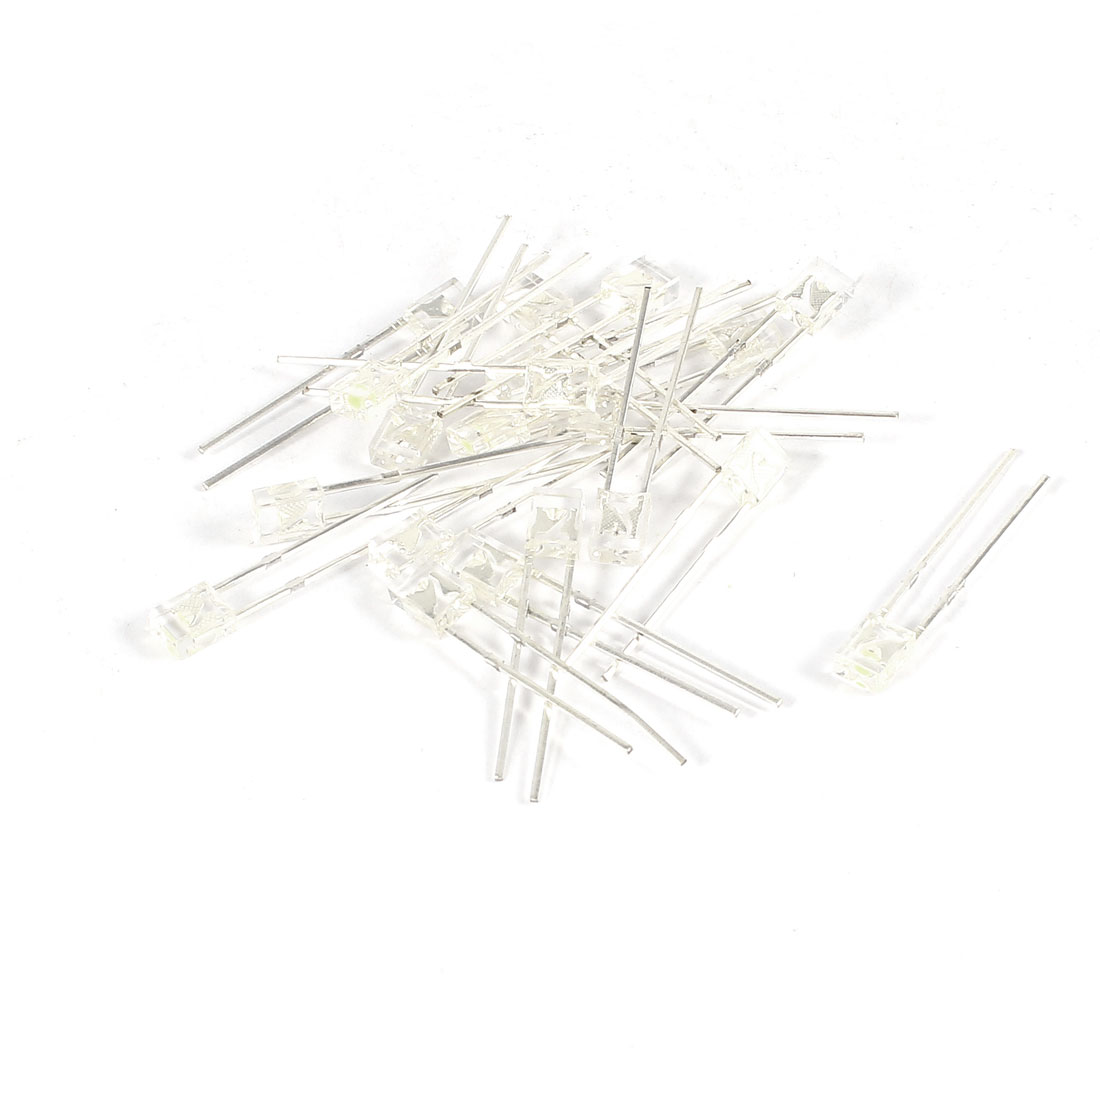 20 Pcs 4mmx3mmx2mm Clear Head Yellow White LED Light Emitting Diodes DC 1.7-3.0V